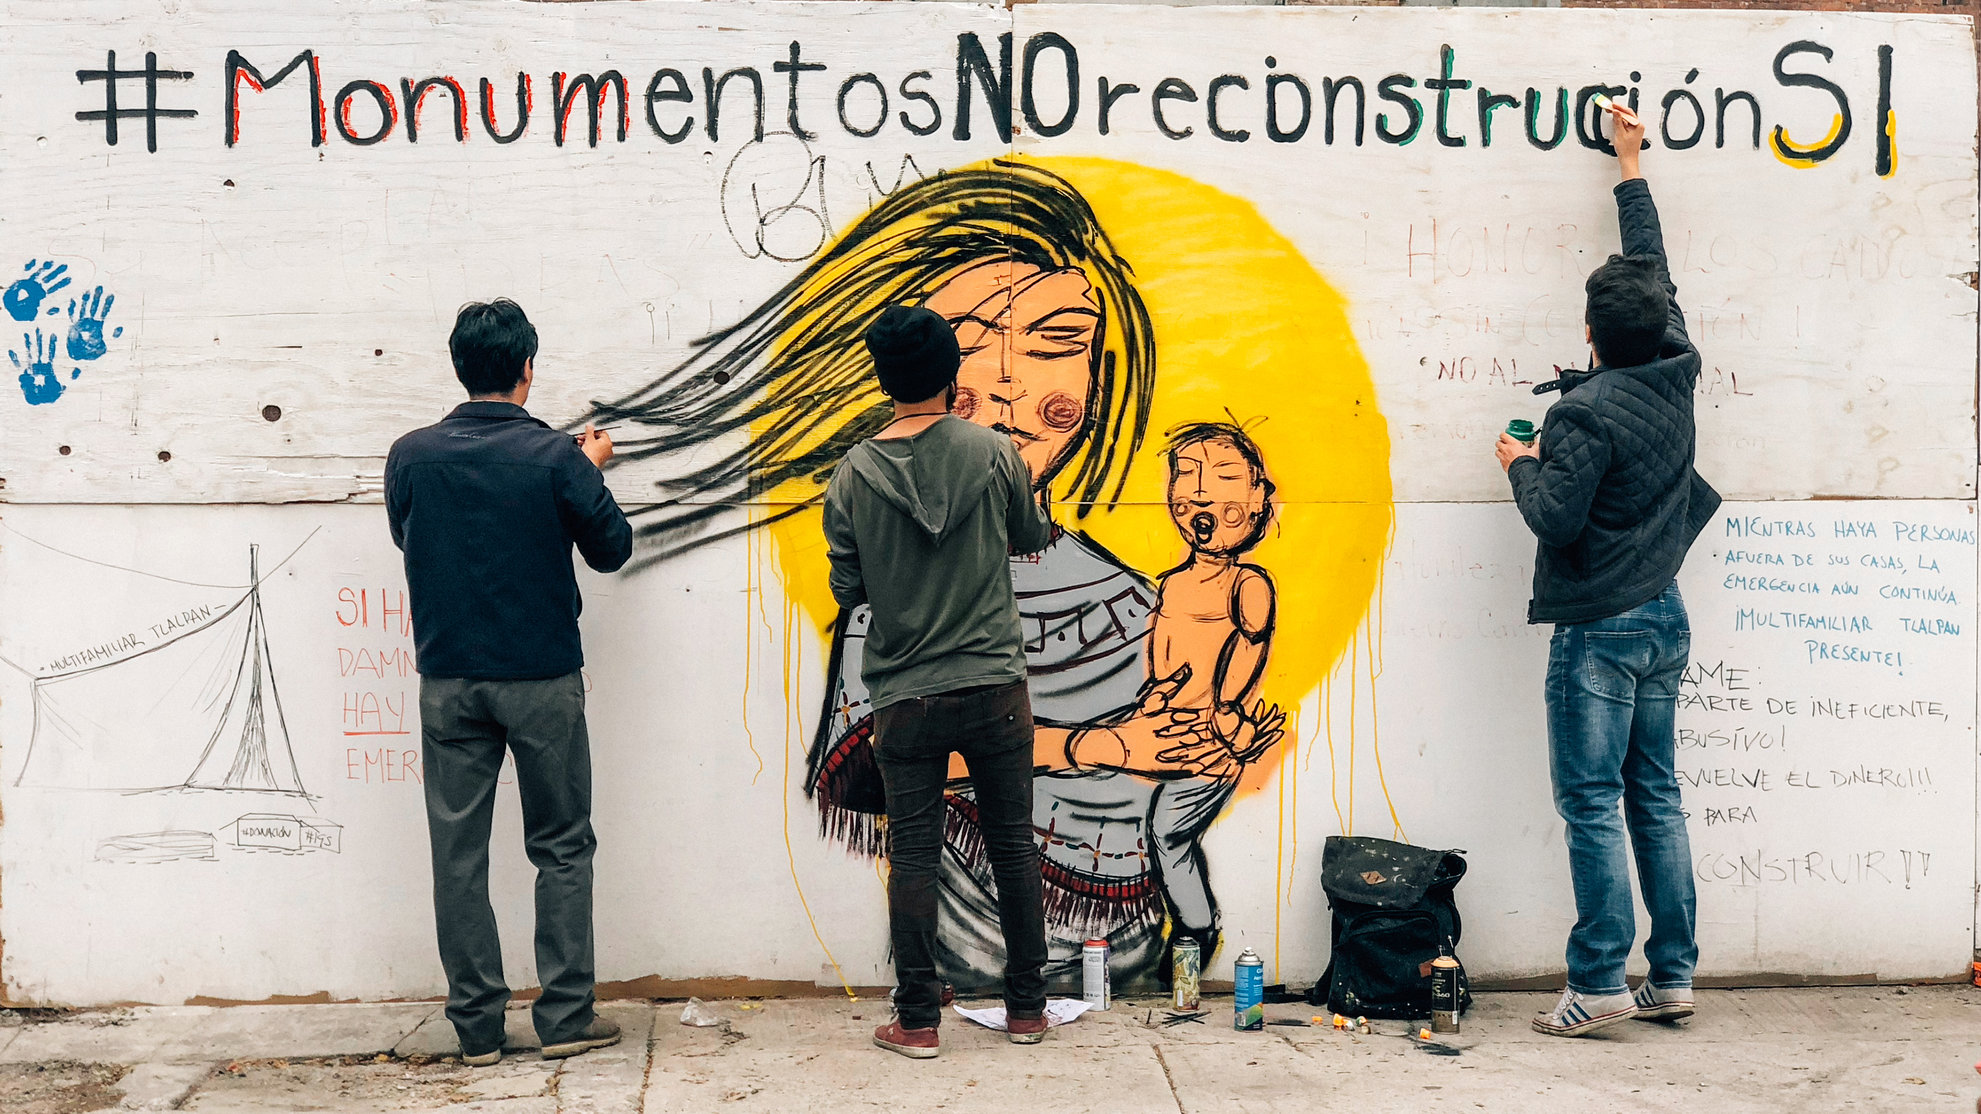 Our Memorial 19s, a 5 month-long campaign to stop the construction of a monument which sponsored forgetting and impunity in the wake of the 2017 Mexico earthquakes